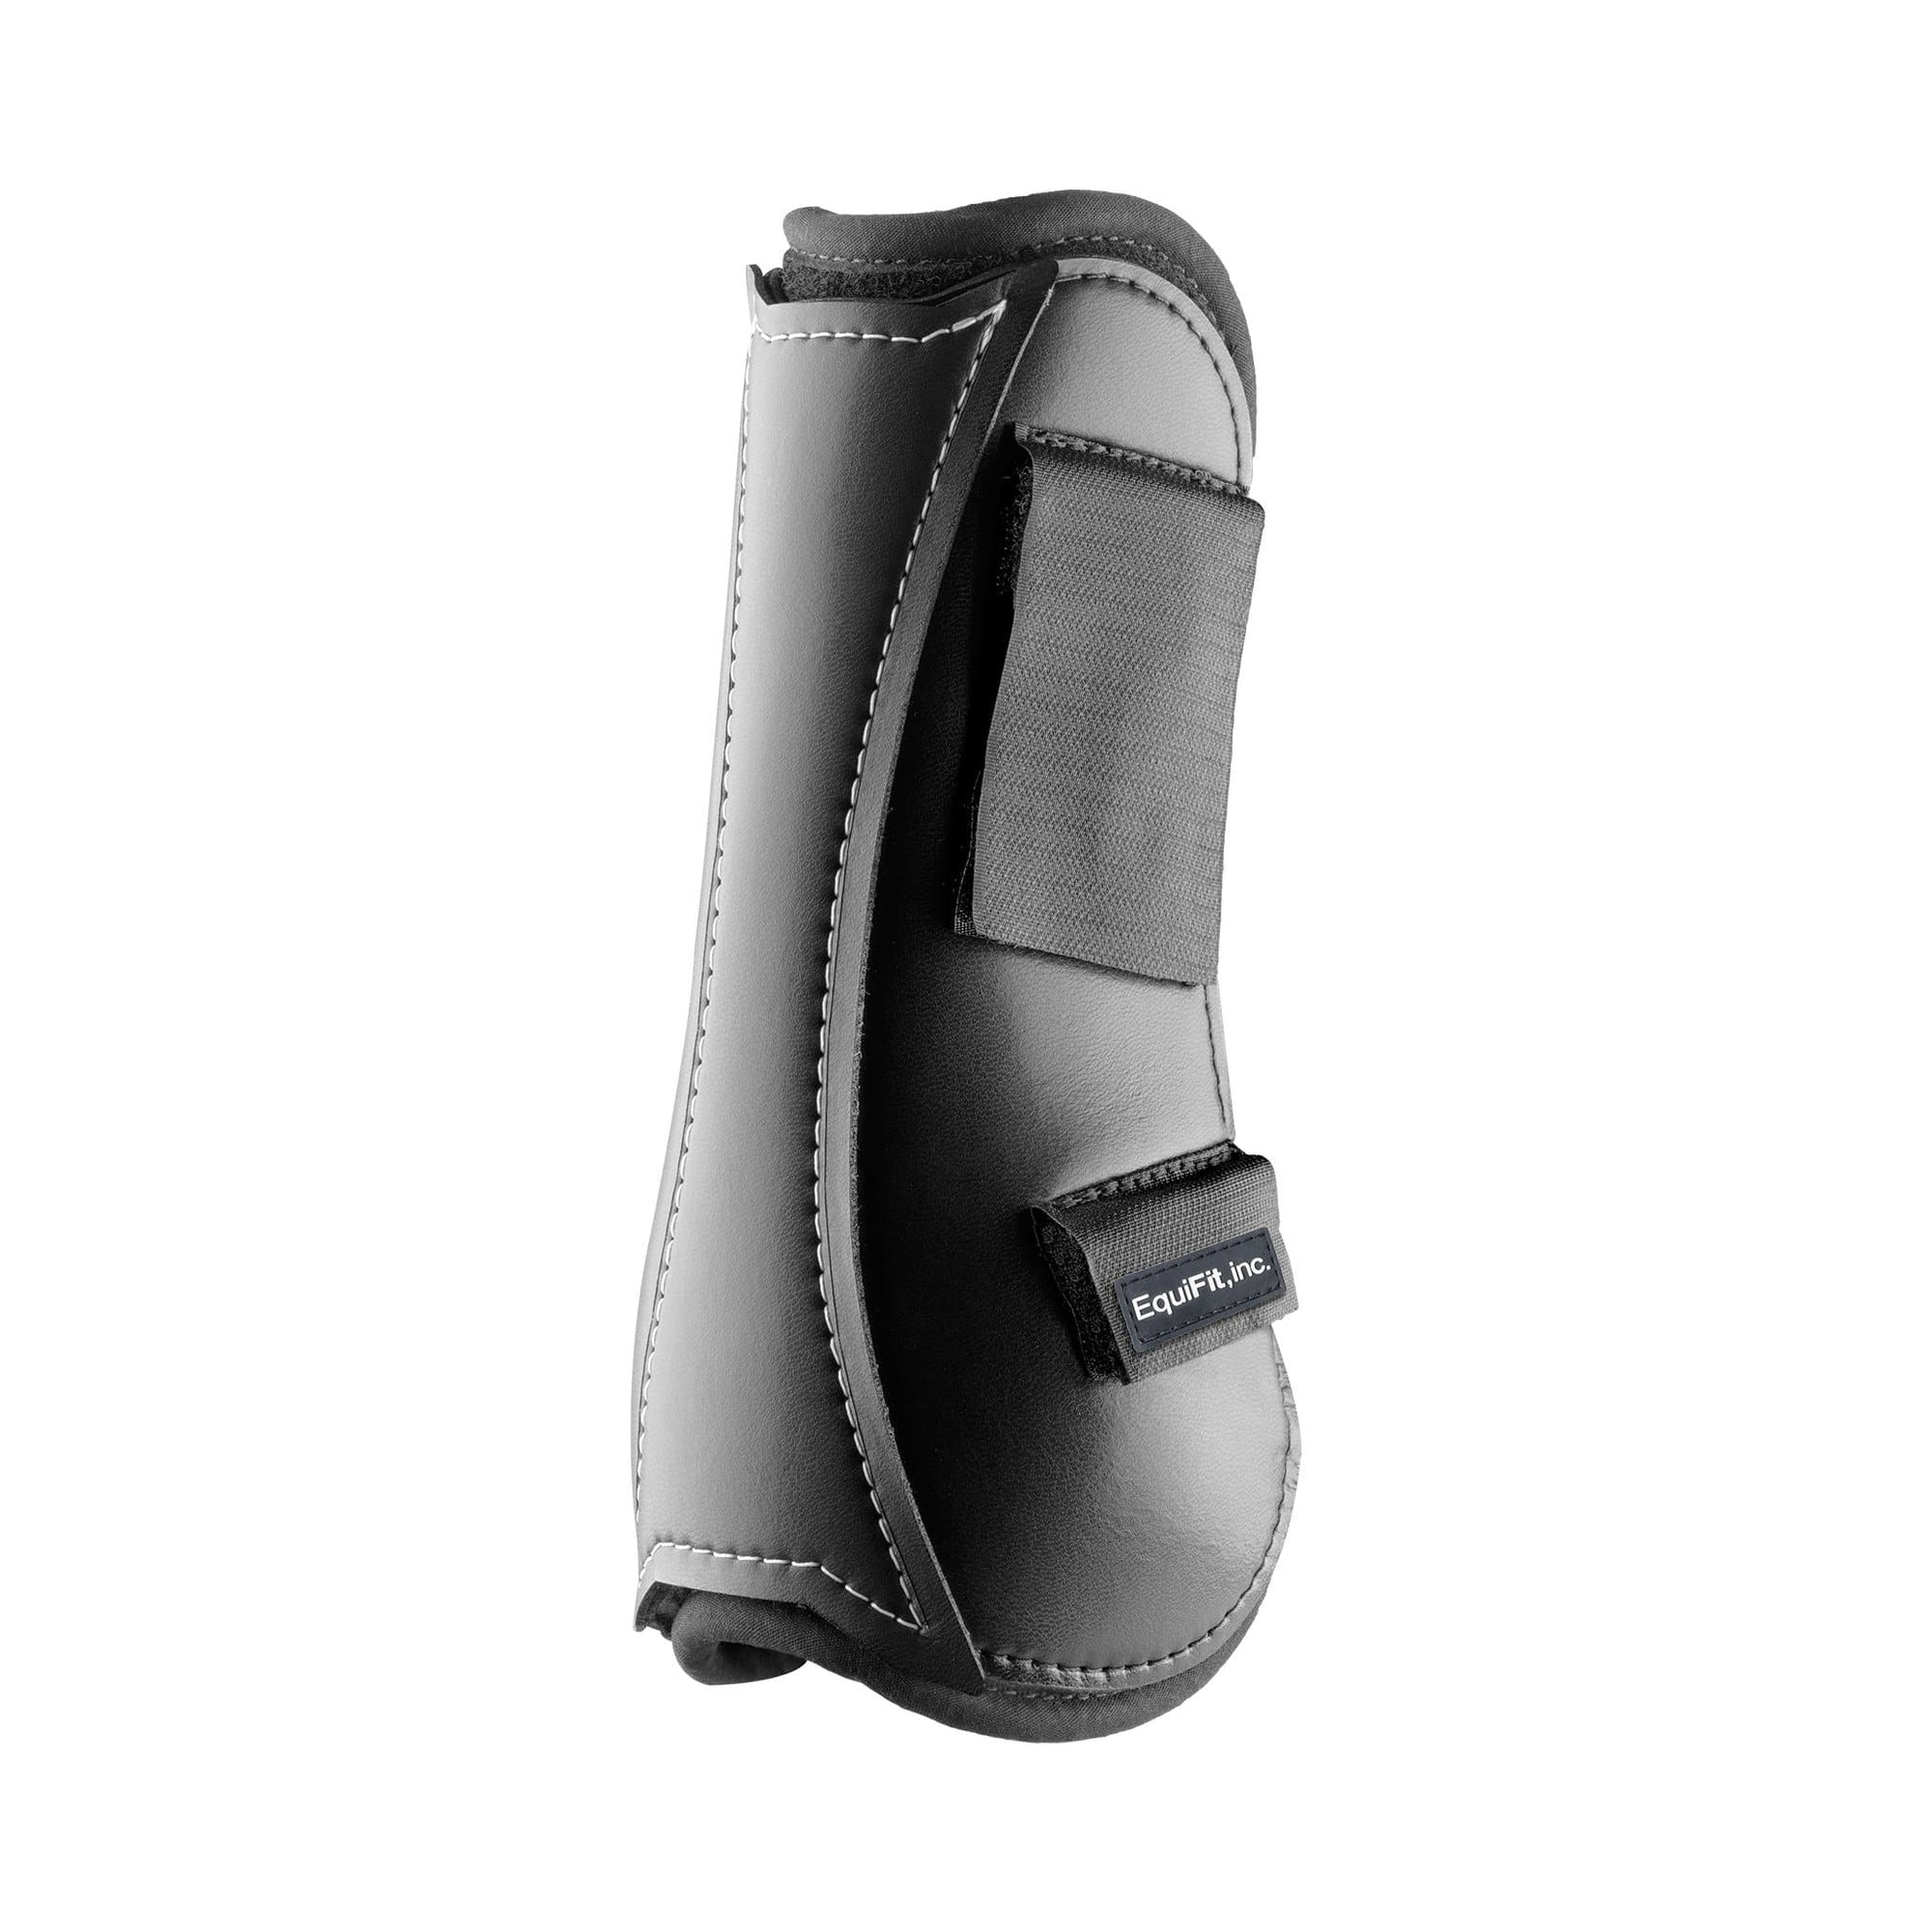 EXP3™ Front Boot, Hook and Loop Closure